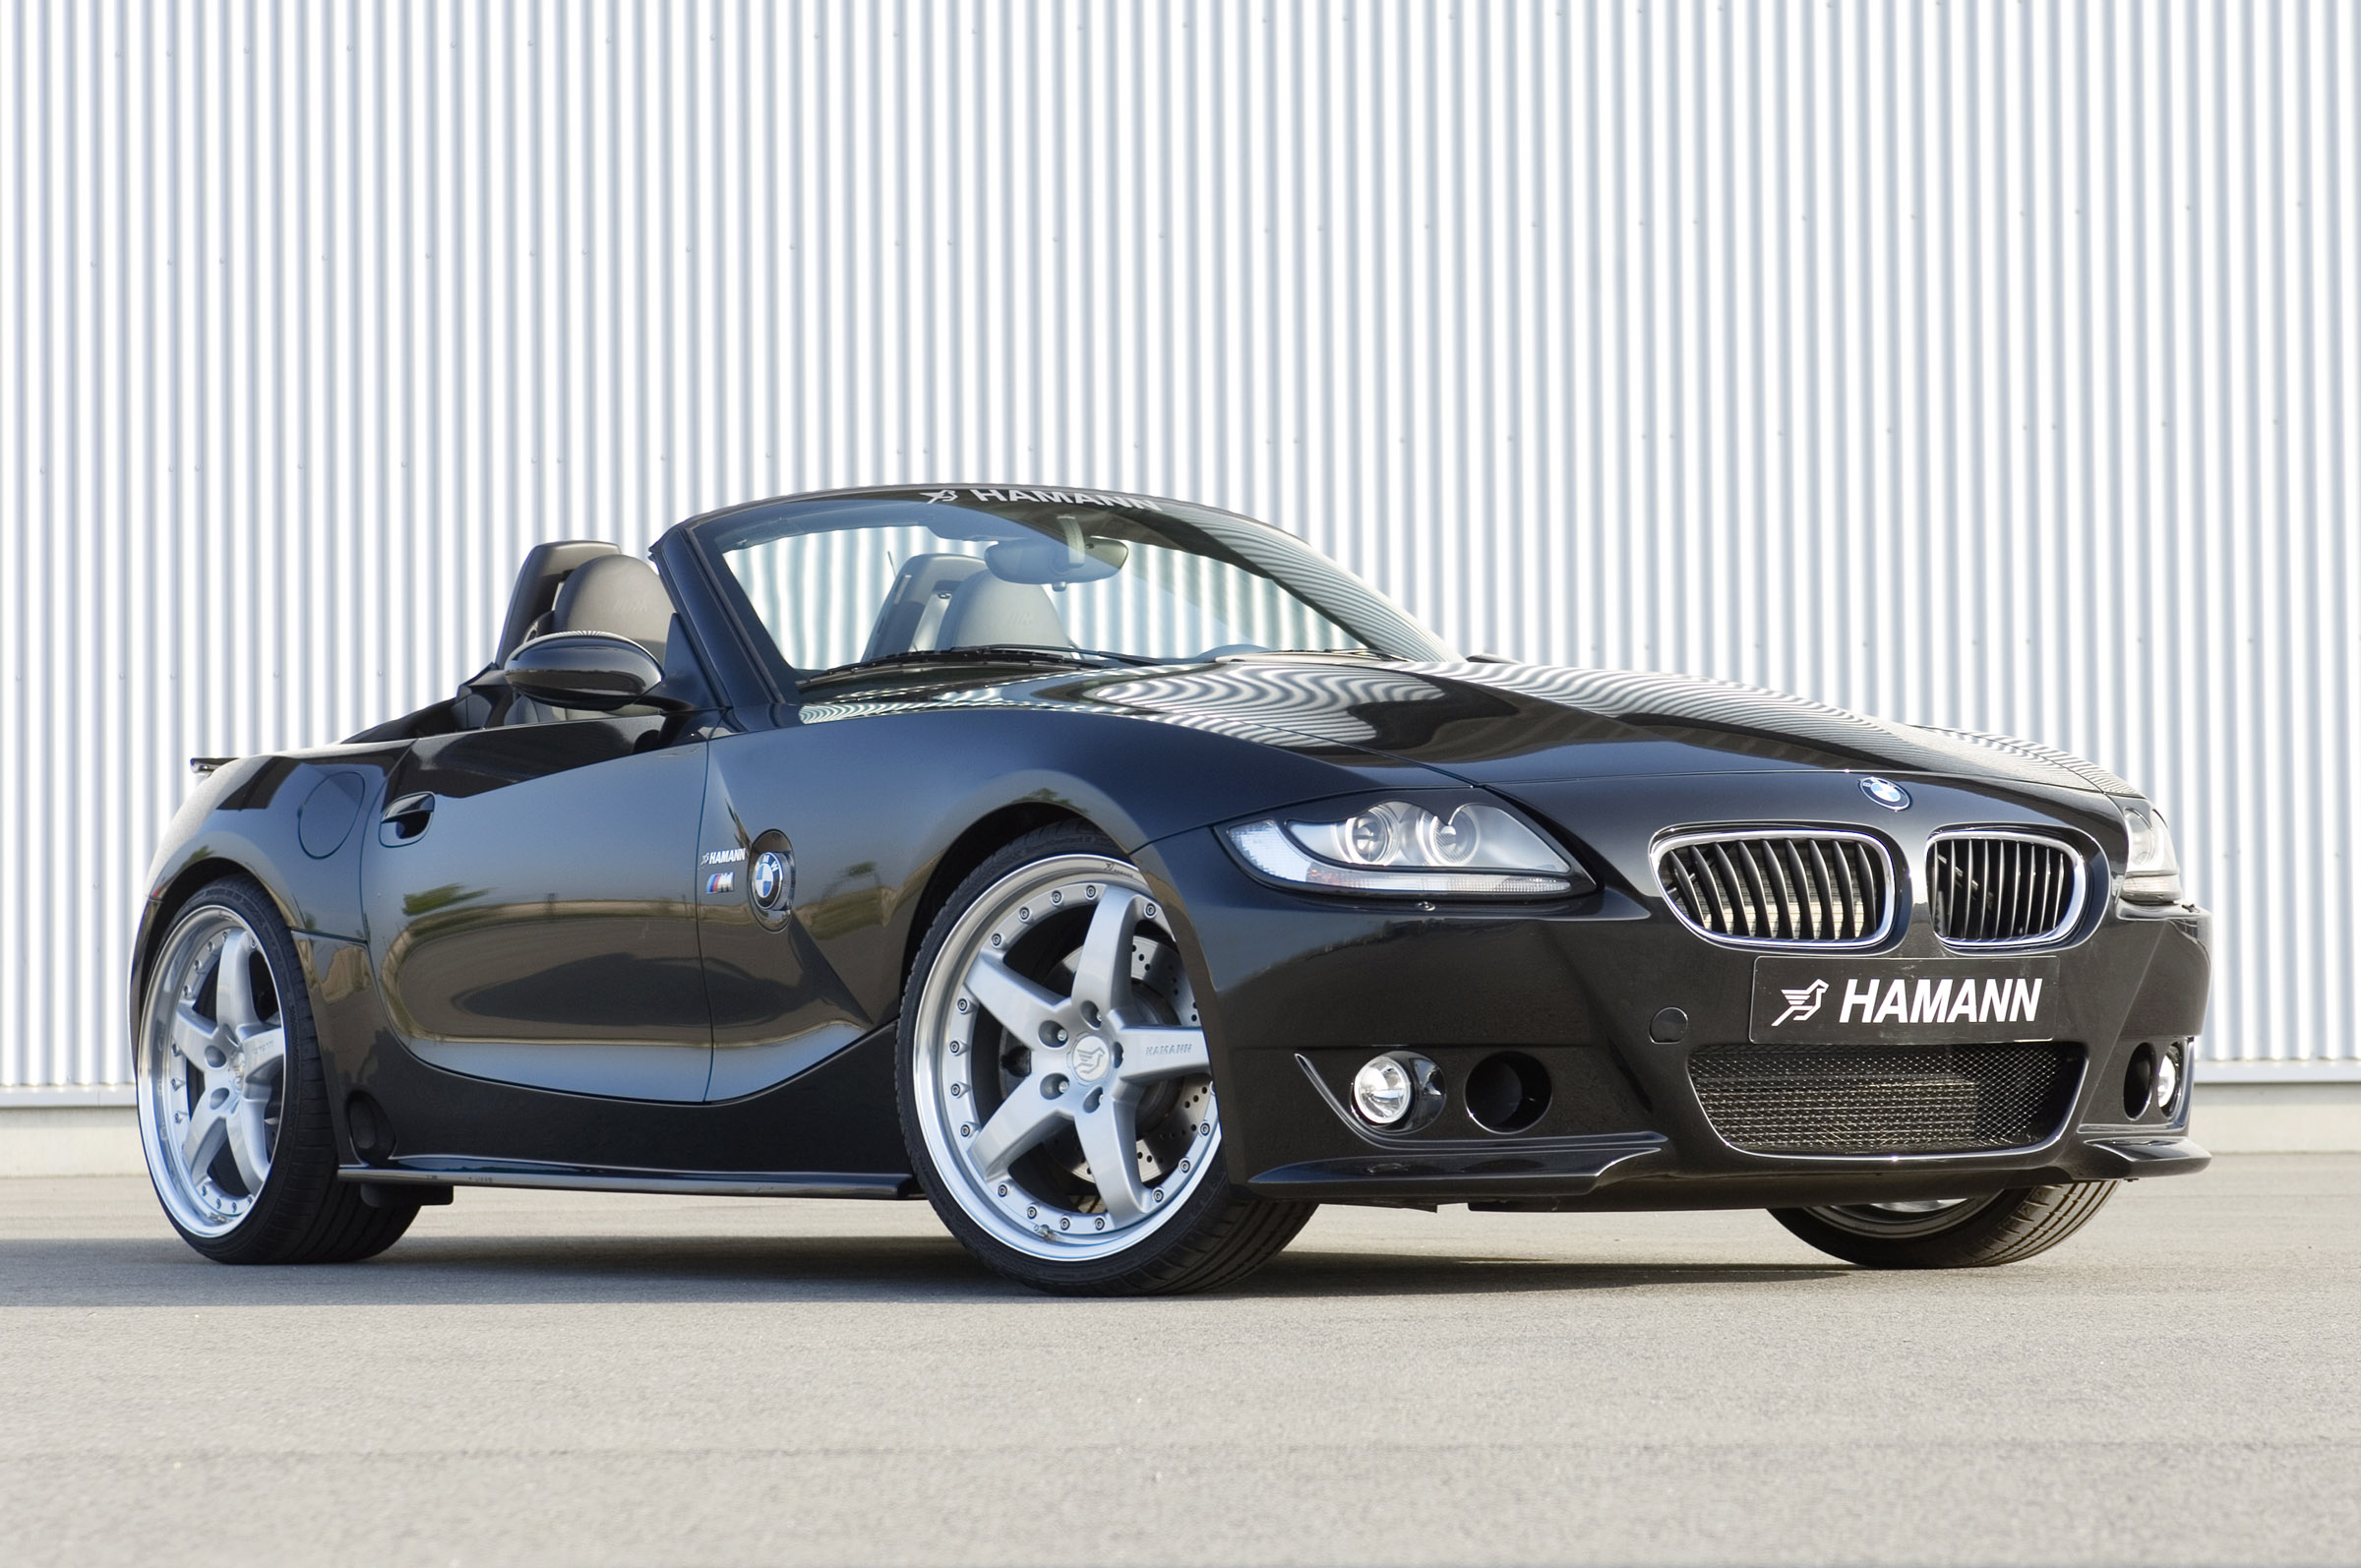 Hamann Bmw Z4 M Roadster Picture 17120